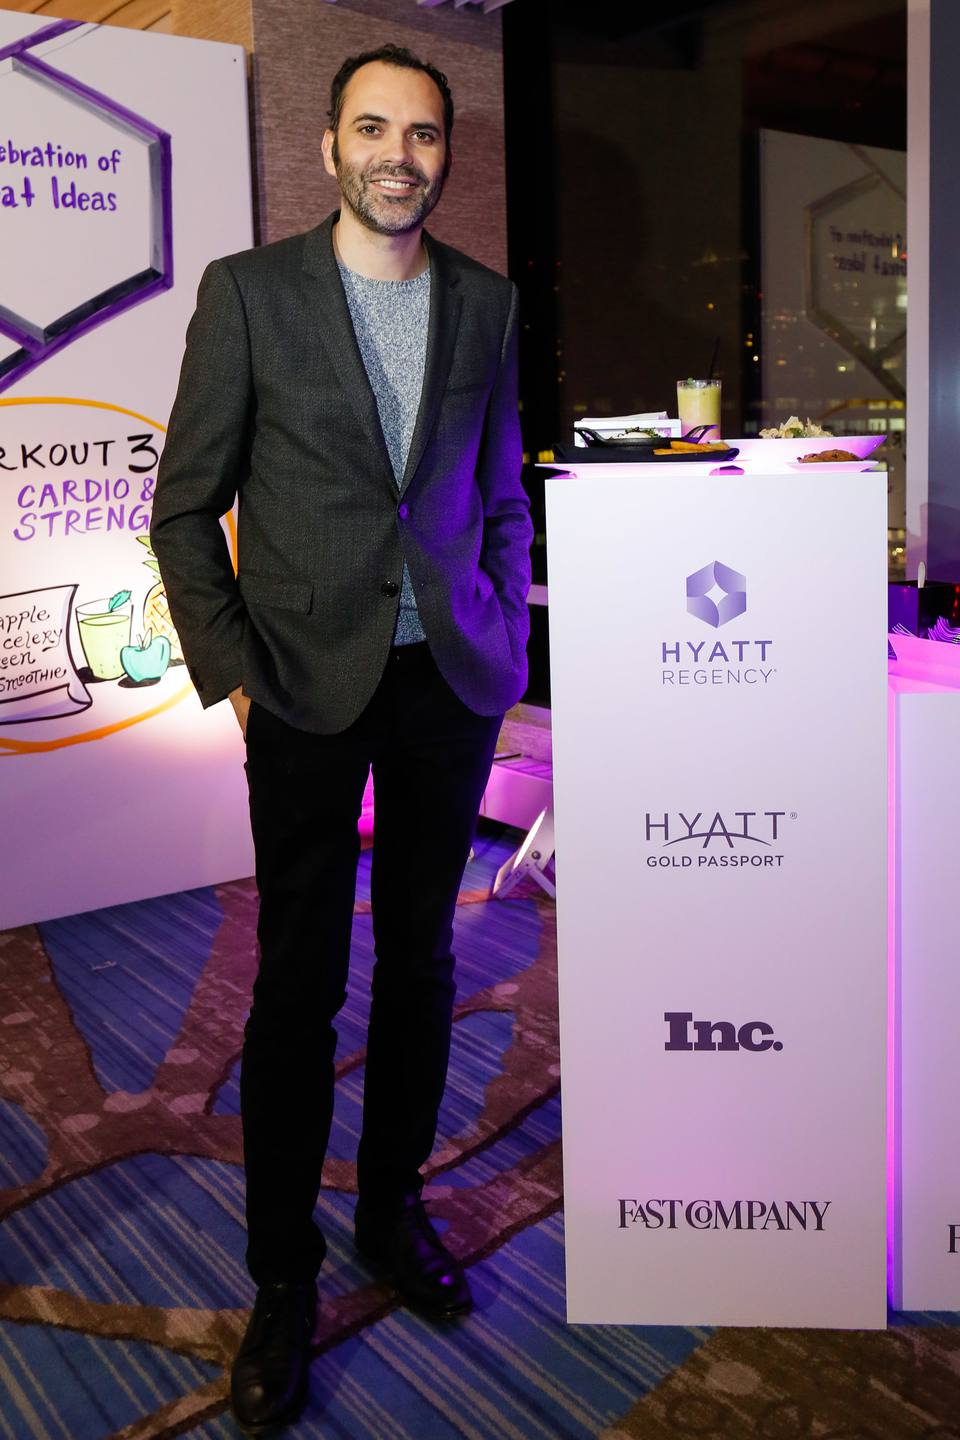 Chef and Cronut creator Dominique Ansel at a Hyatt event